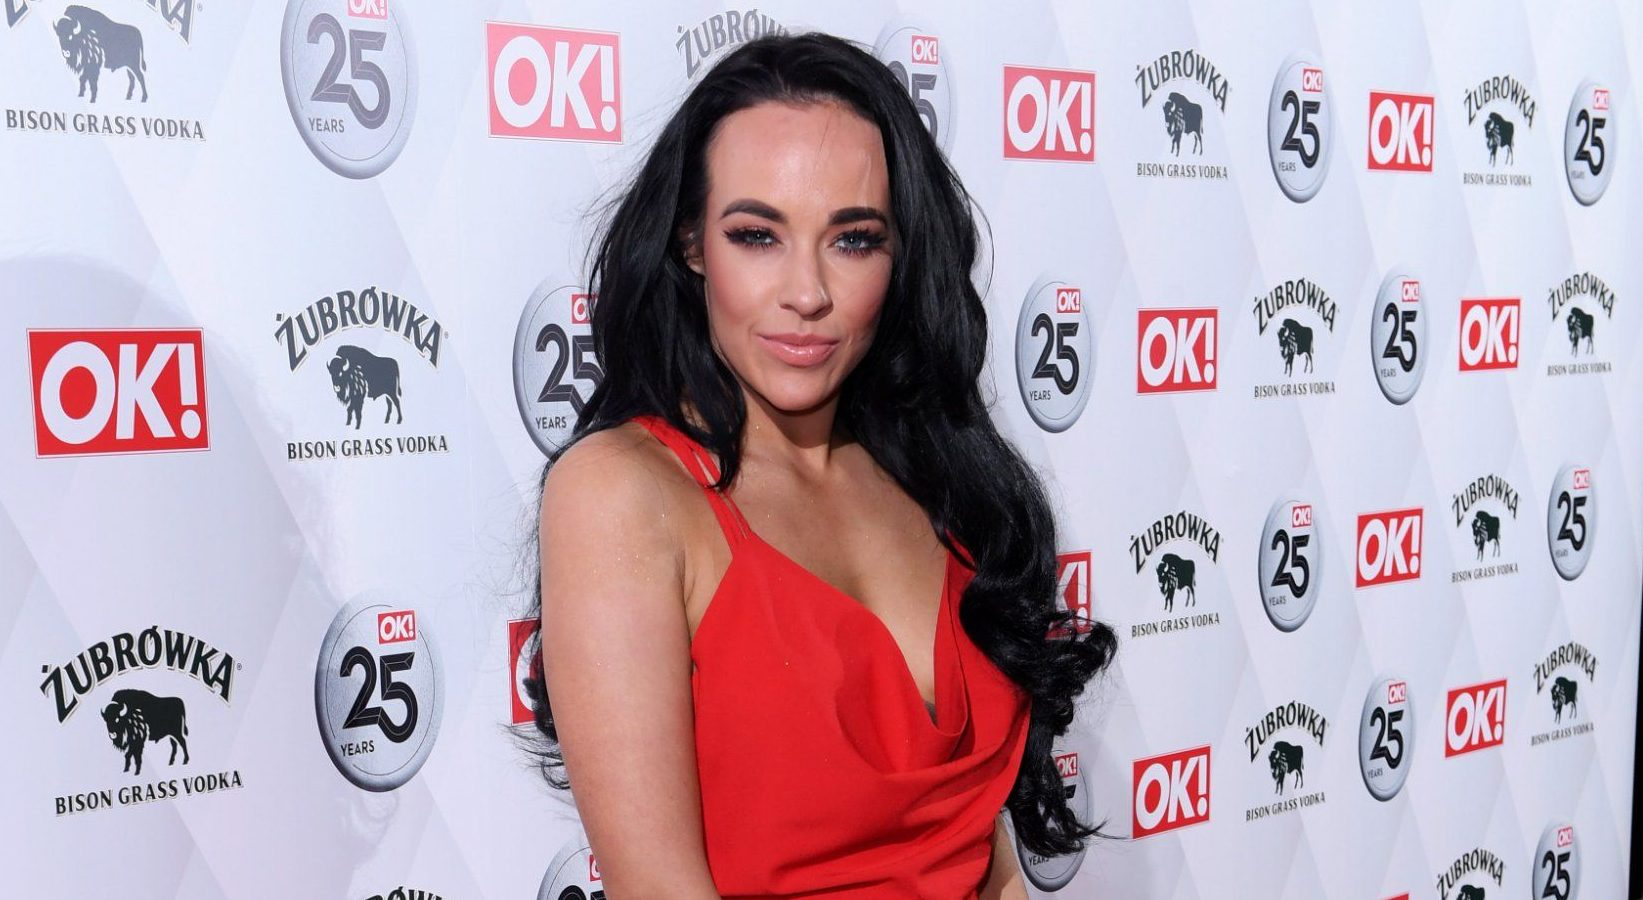 Stephanie Davis requested Hollyoaks return after overcoming depression and suicidal thoughts